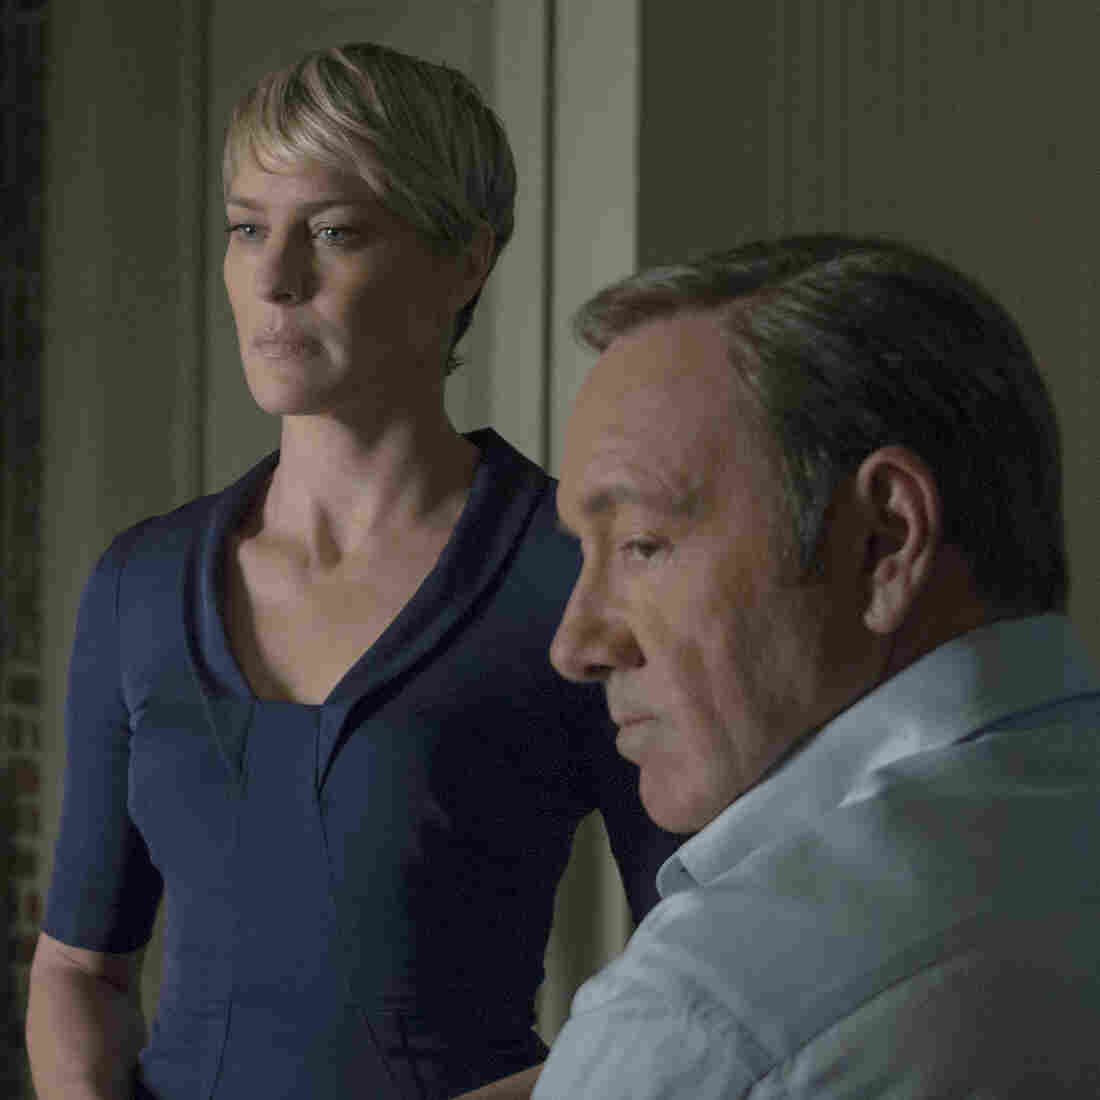 Antihero Or Villain? In 'House Of Cards,' It's Hard To Tell